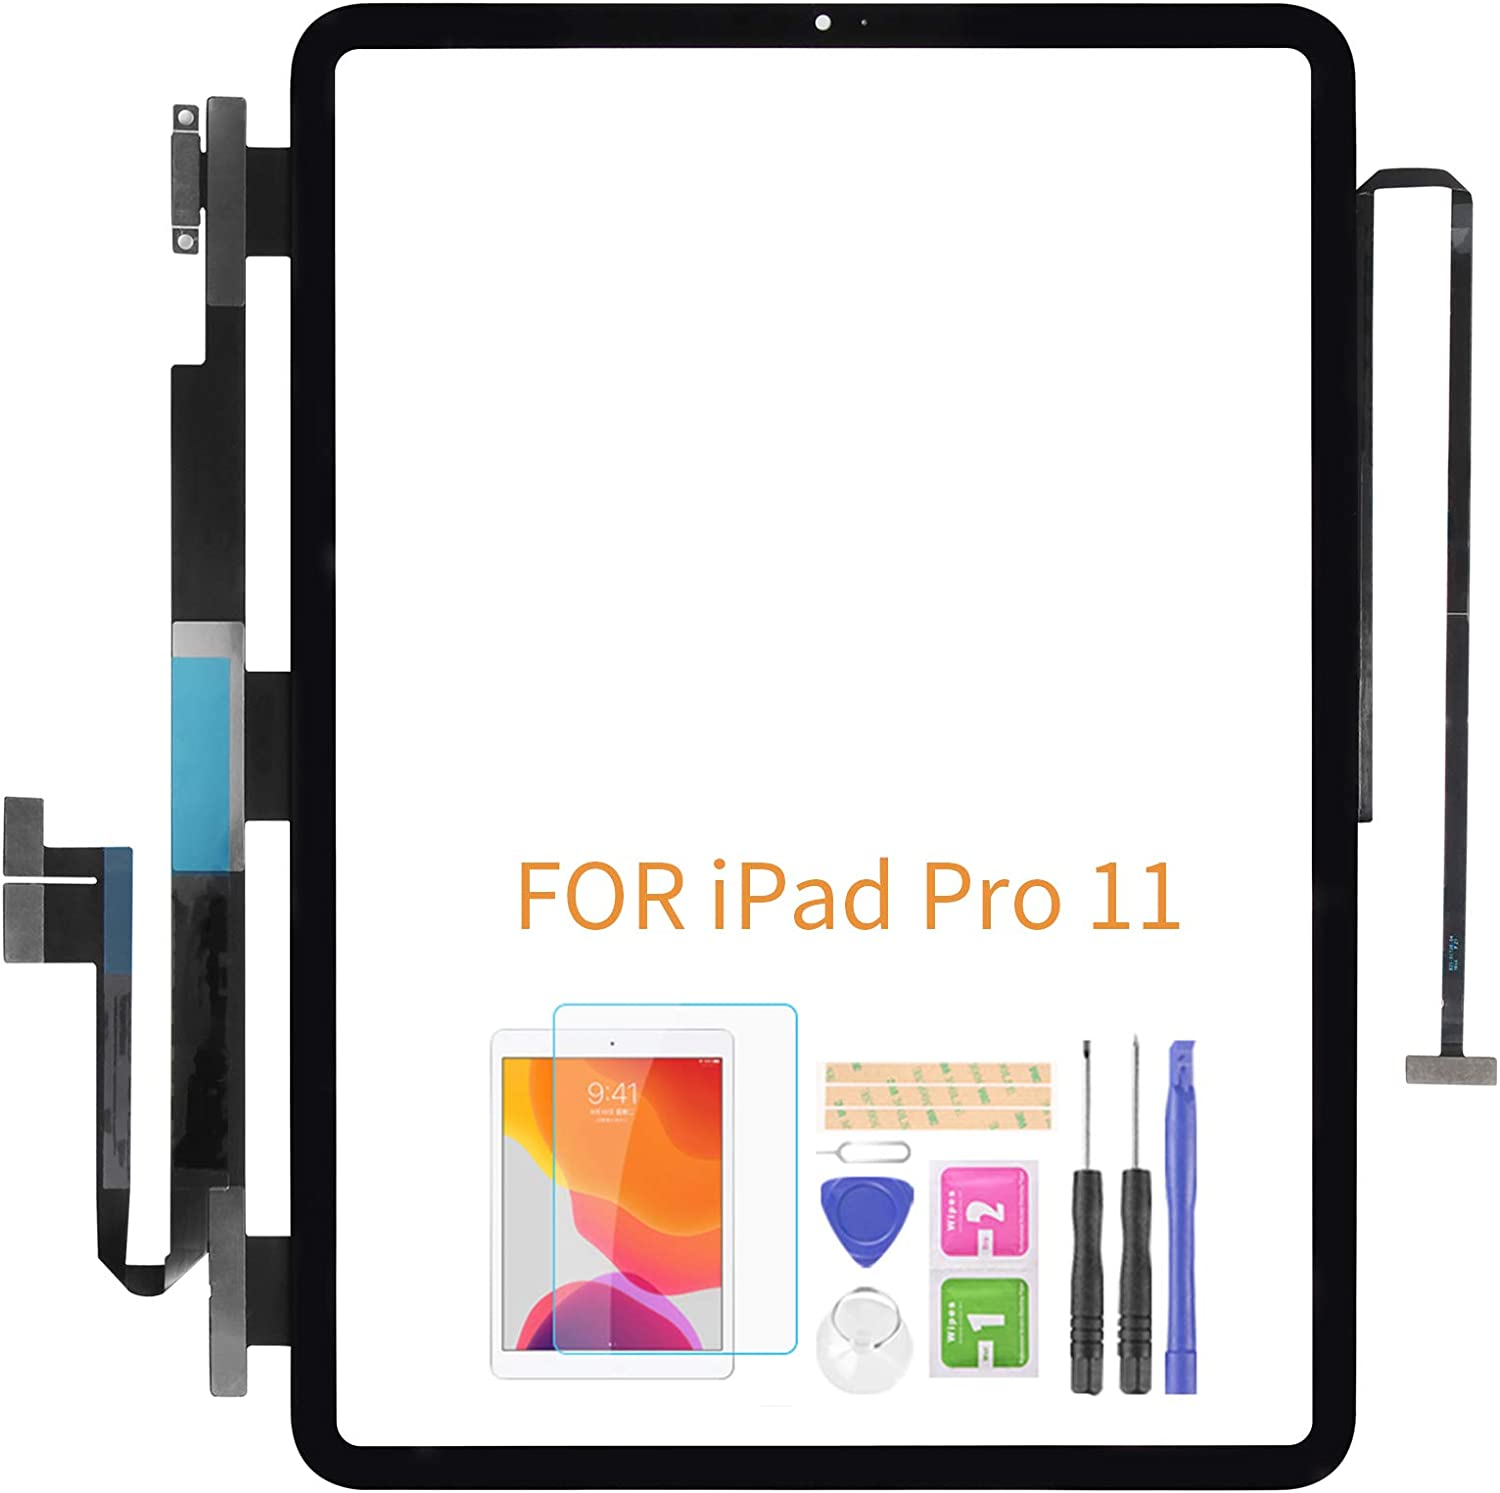 Screen Replacement for iPad Pro 11 inch 2018 A1980 A2013 A1934 A1979 Touch Sensor Glass Panel Lens Digitizer Repair Parts with Tempered Glass +Free Tools(No LCD)